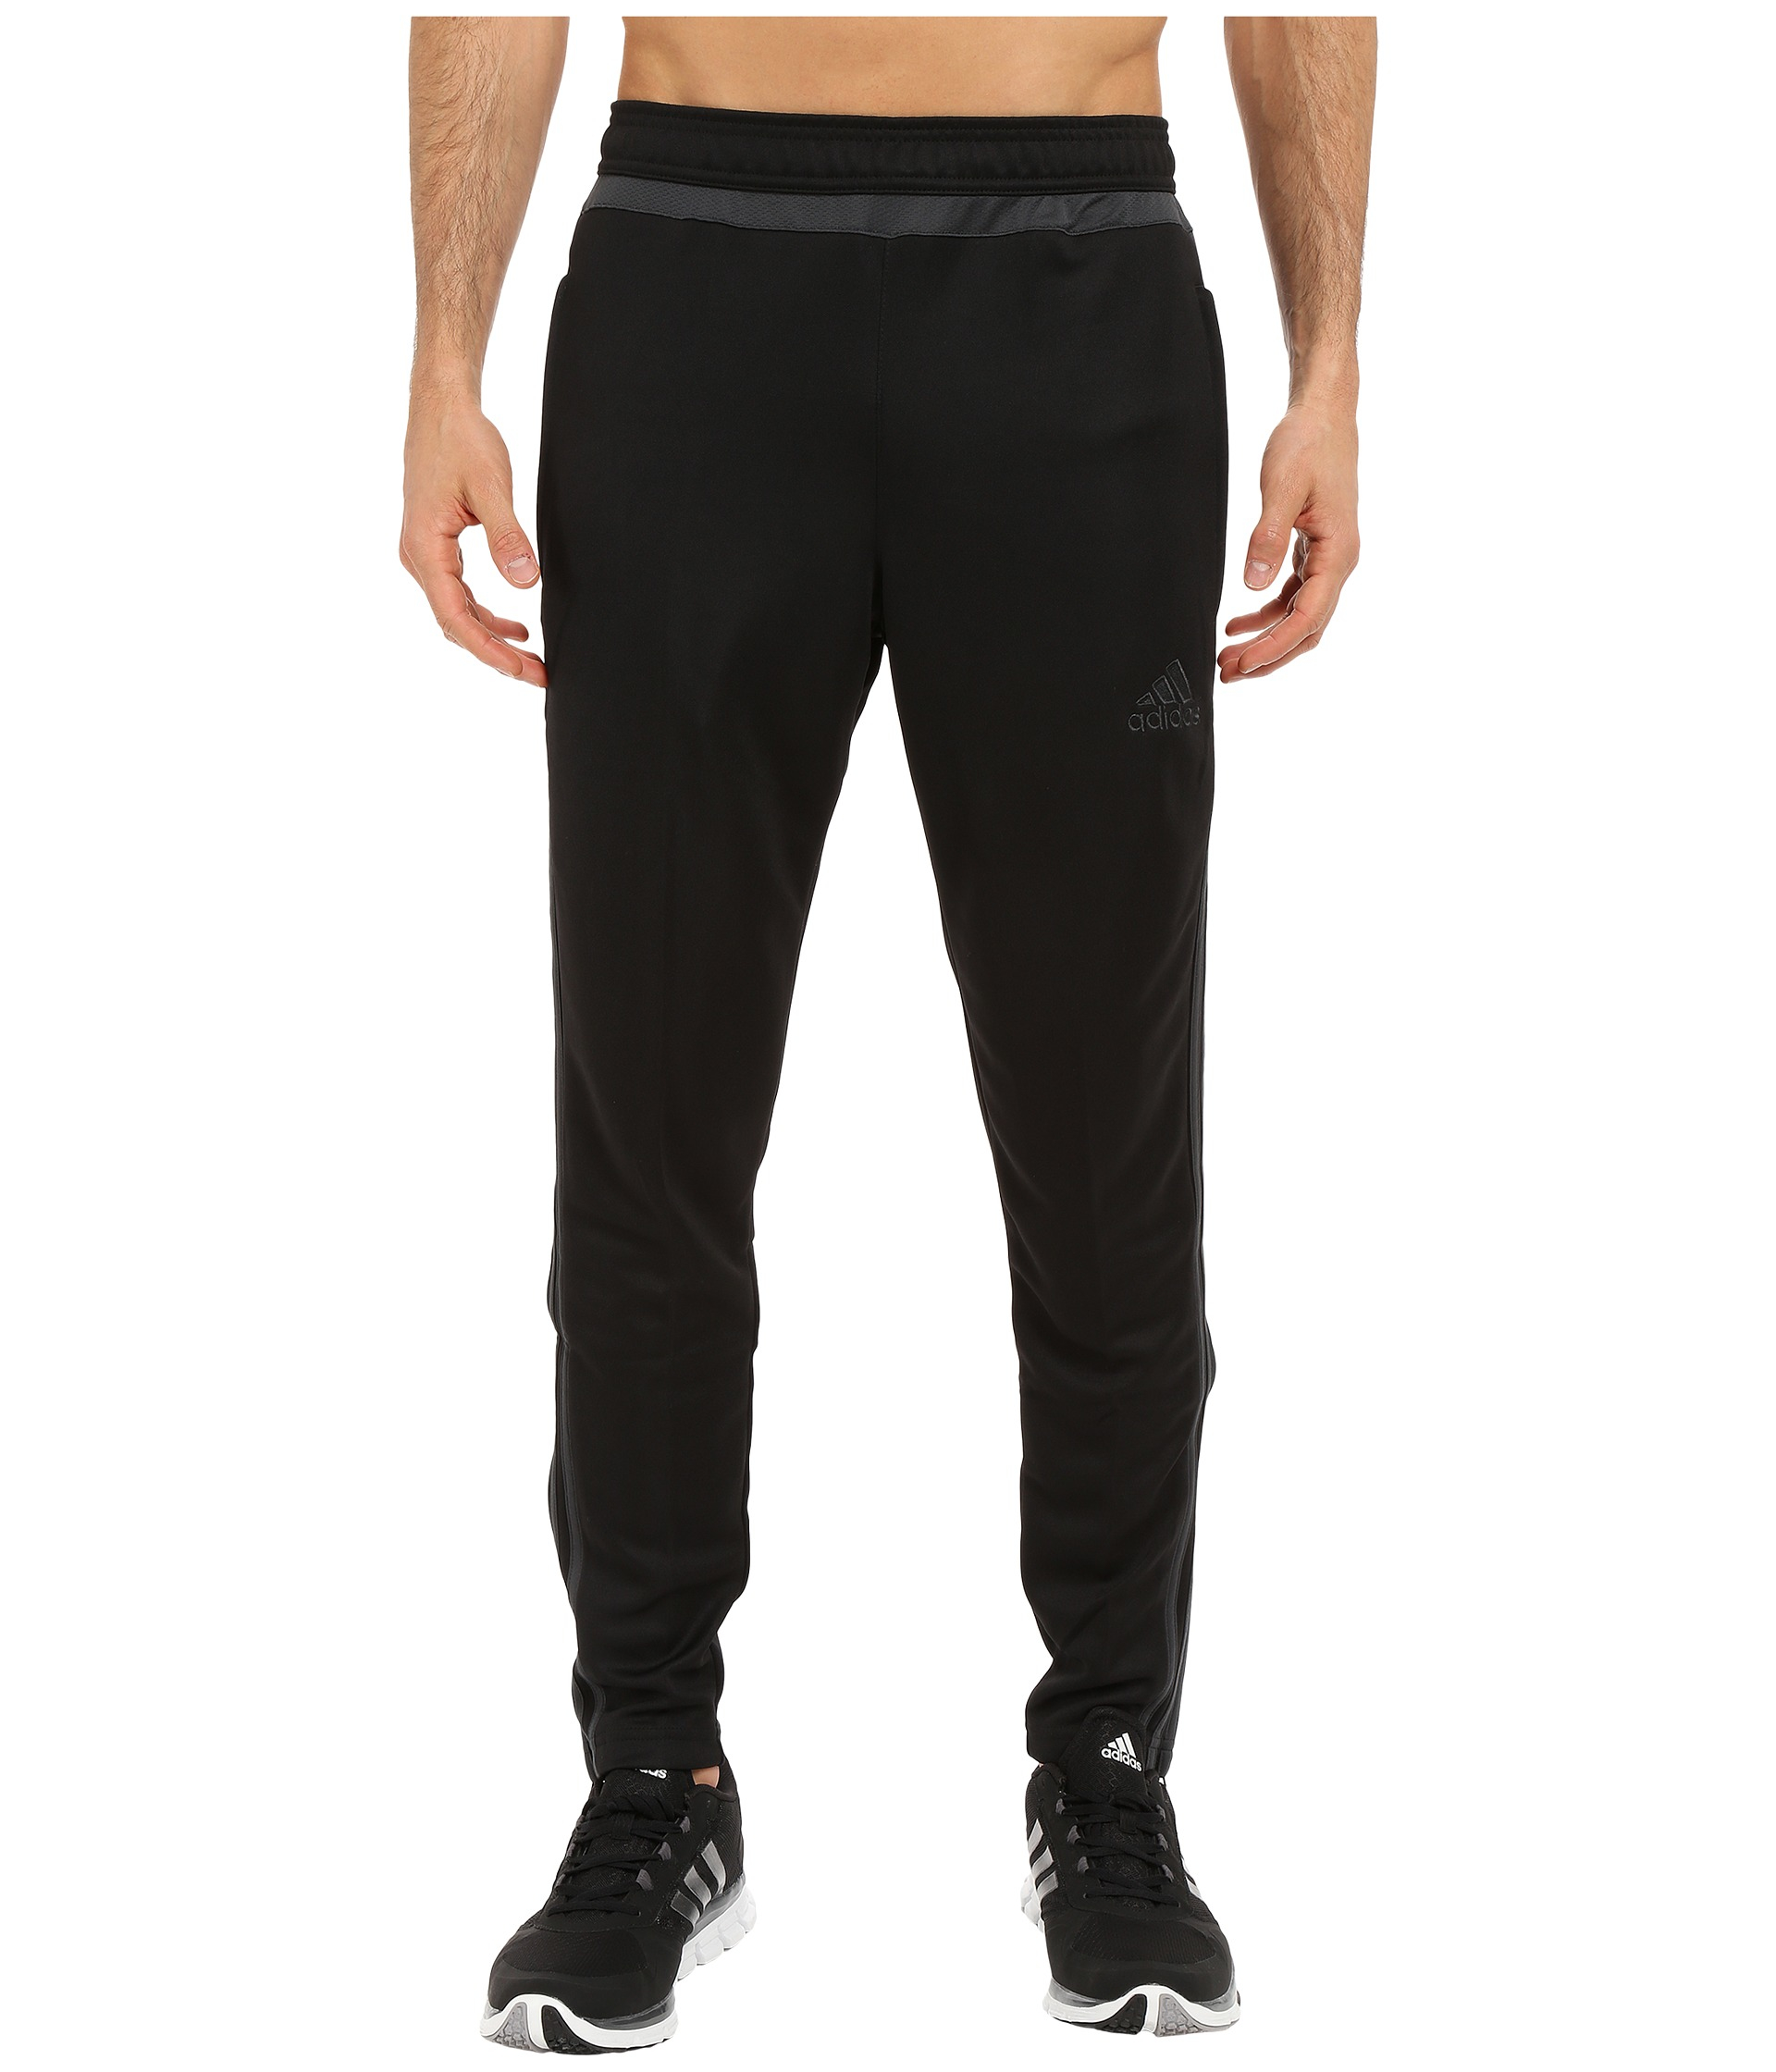 tiro black single men Buy adidas originals black men's 3-stripes tiro pants, starting at $37 similar products also available sale now on.